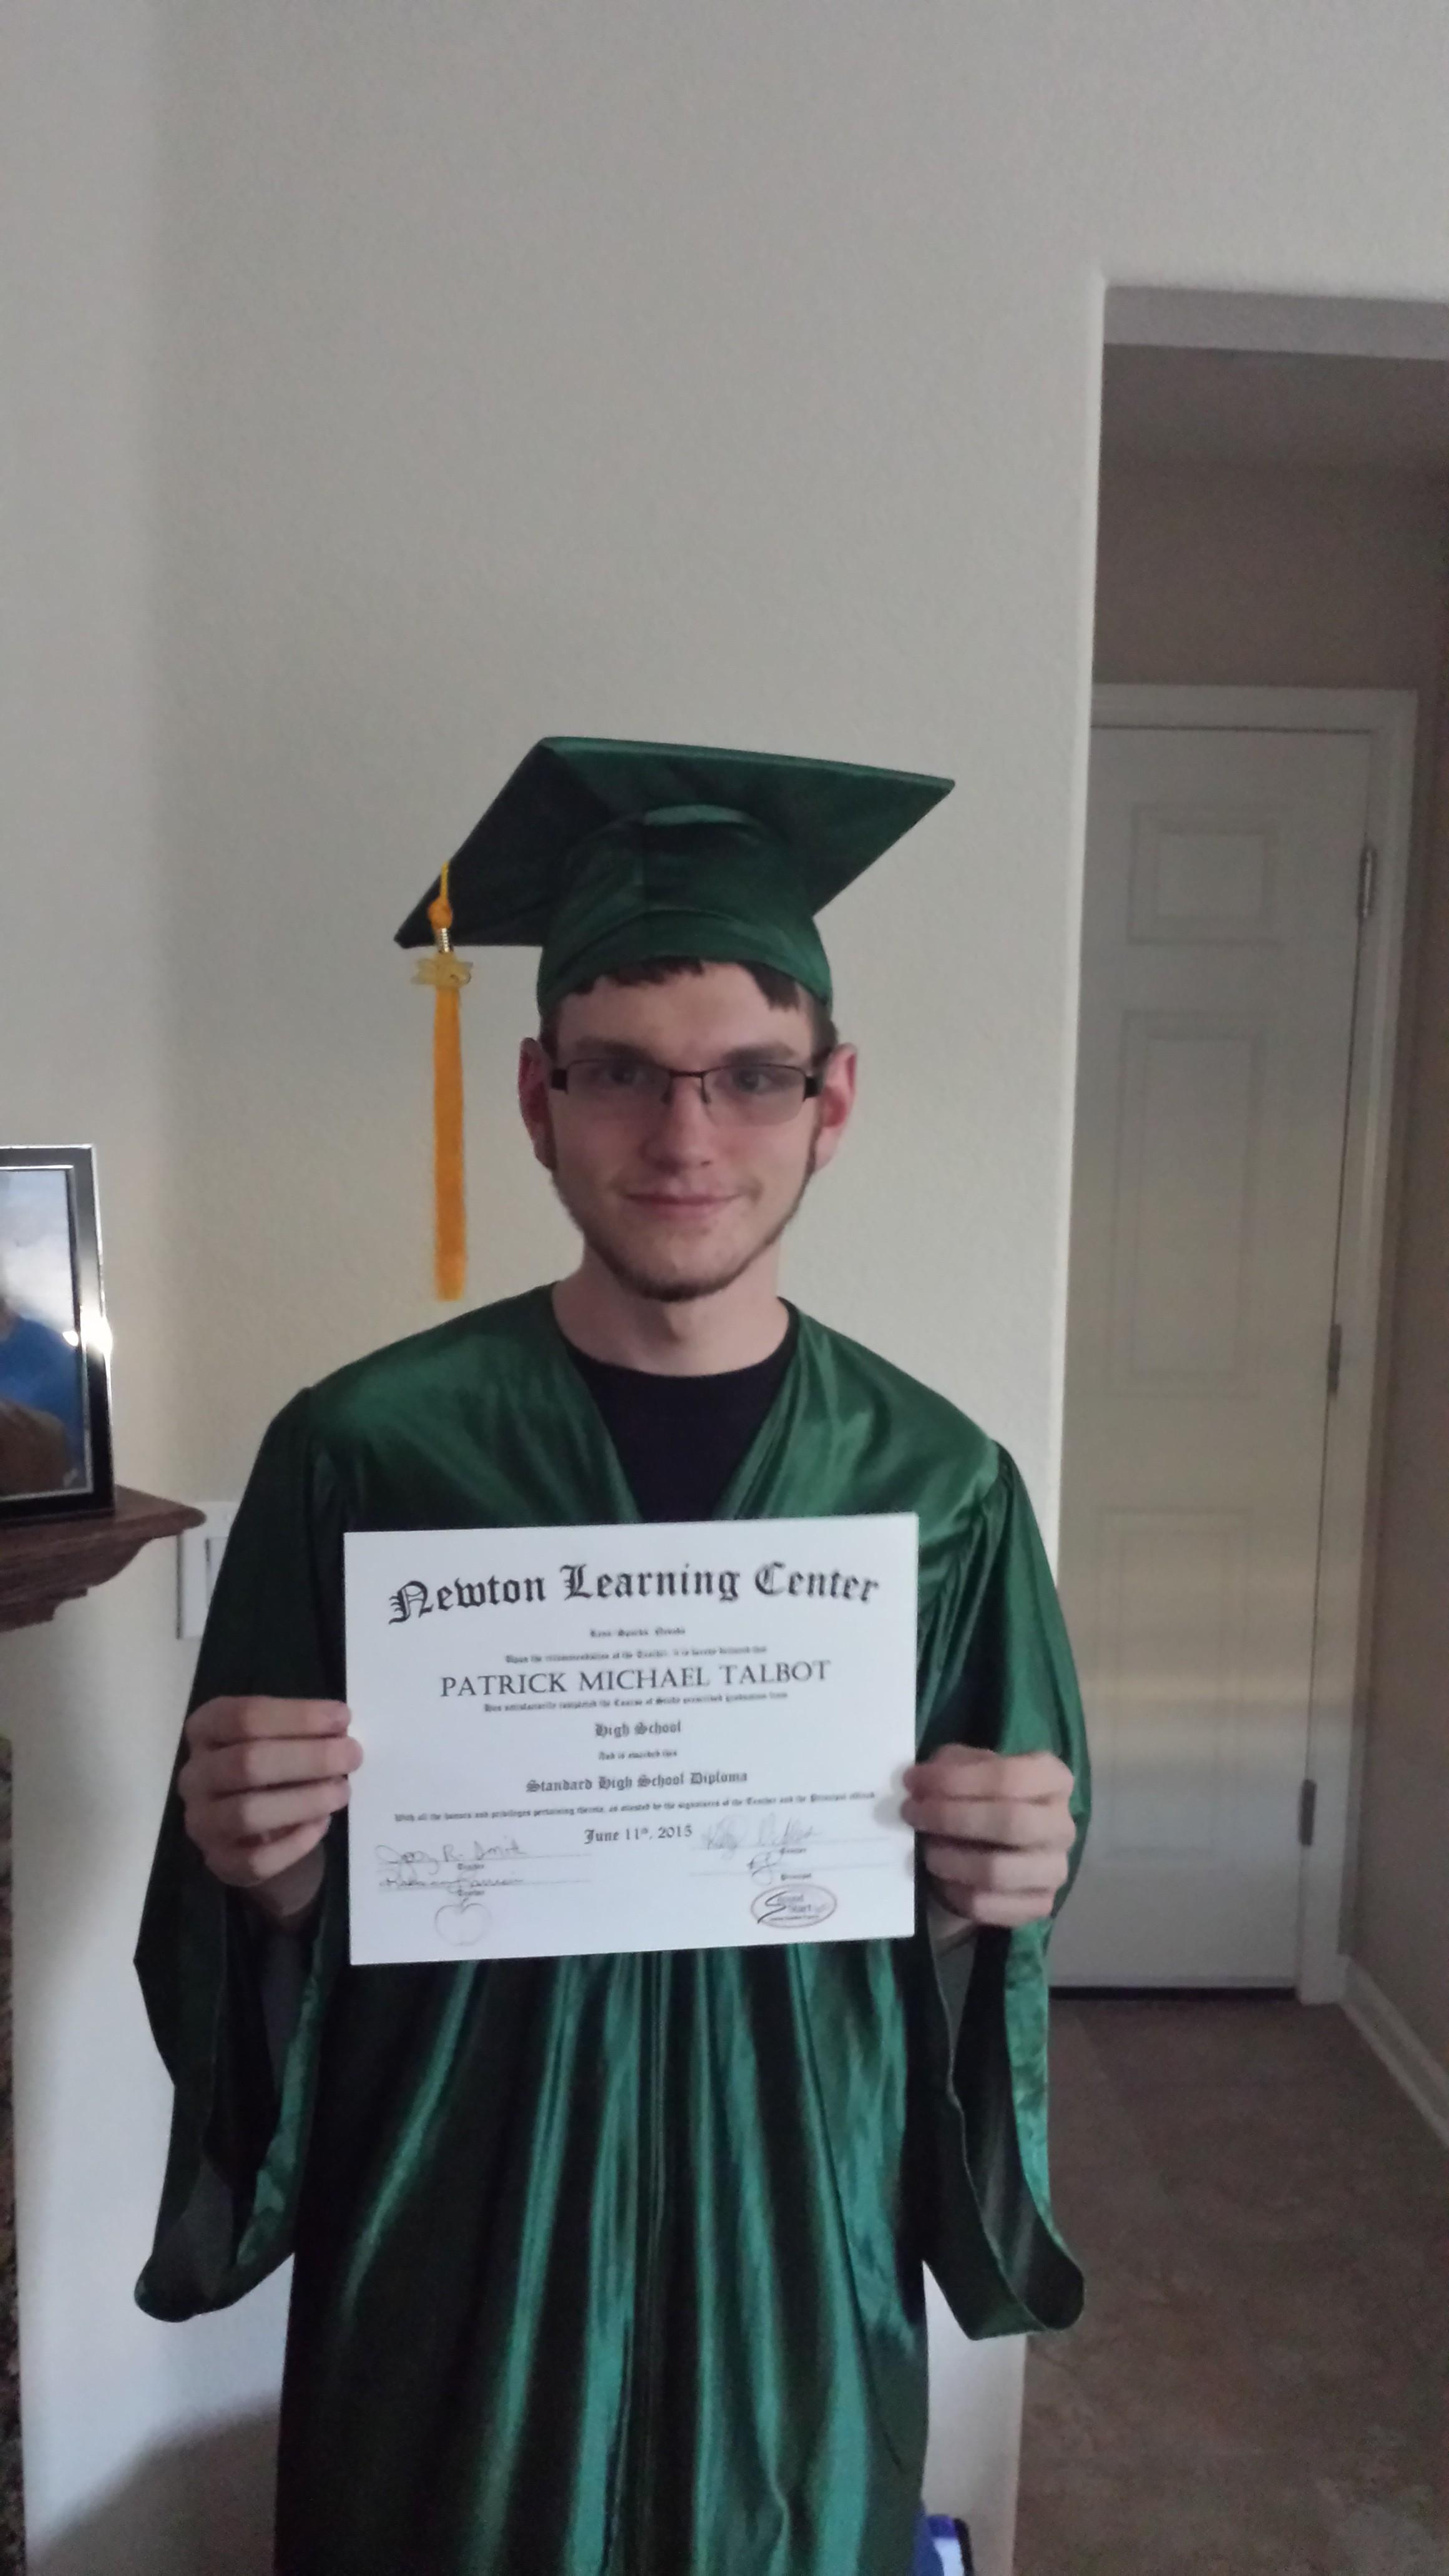 Patrick Talbot with his diploma from Newton Learning Center.